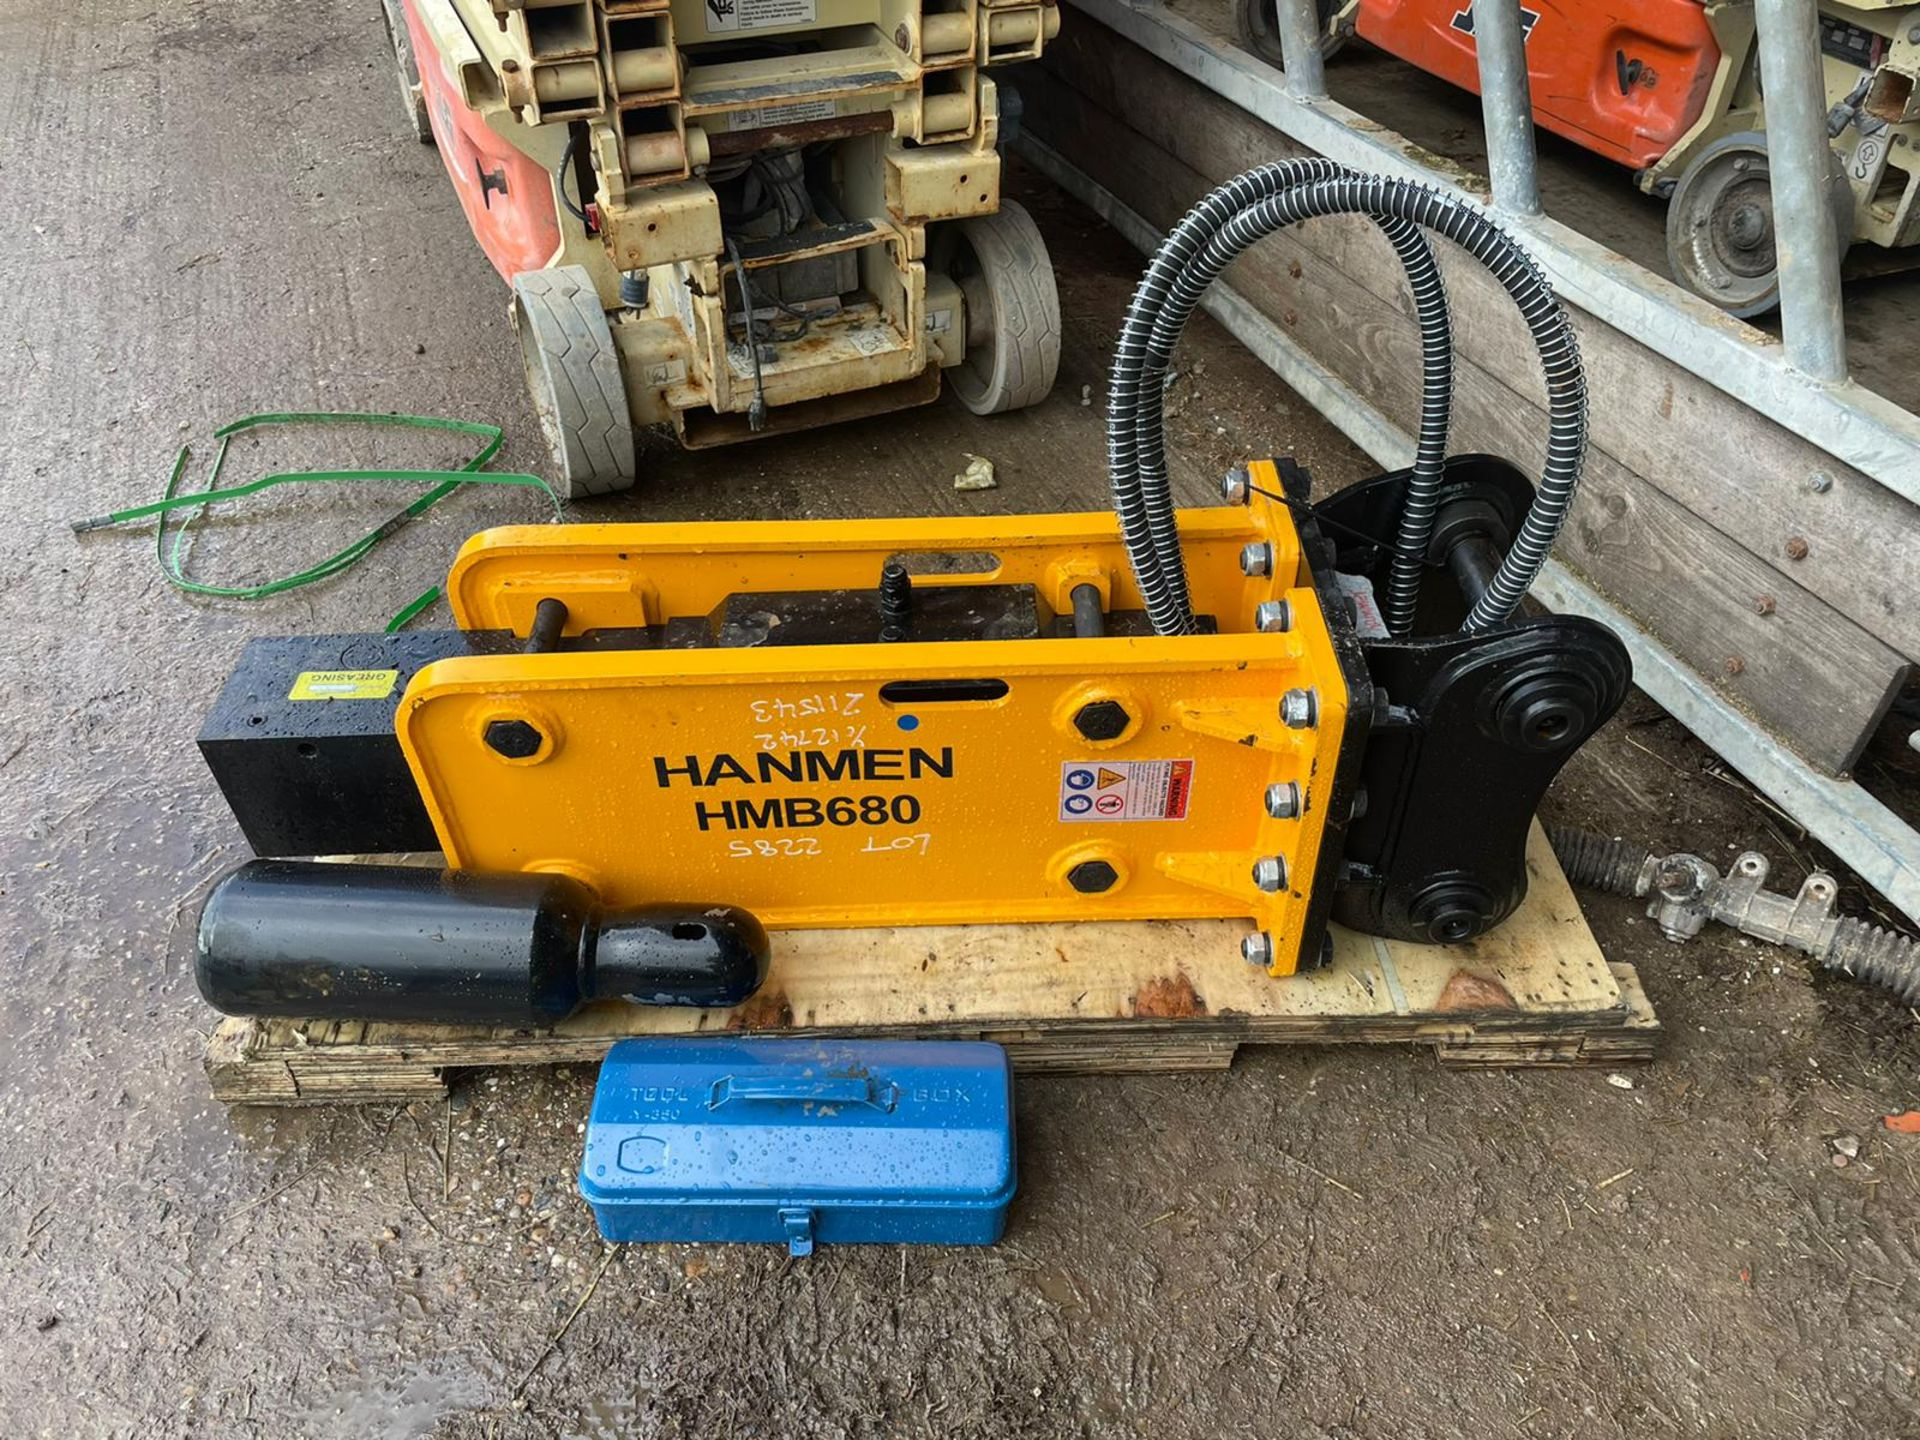 BRAND NEW, UNUSED HANMEN HMB680 BREAKER, SUITABLE FOR 5-8 TON EXCAVATOR, C/W PIPES, CHISEL, GAS KIT - Image 4 of 4